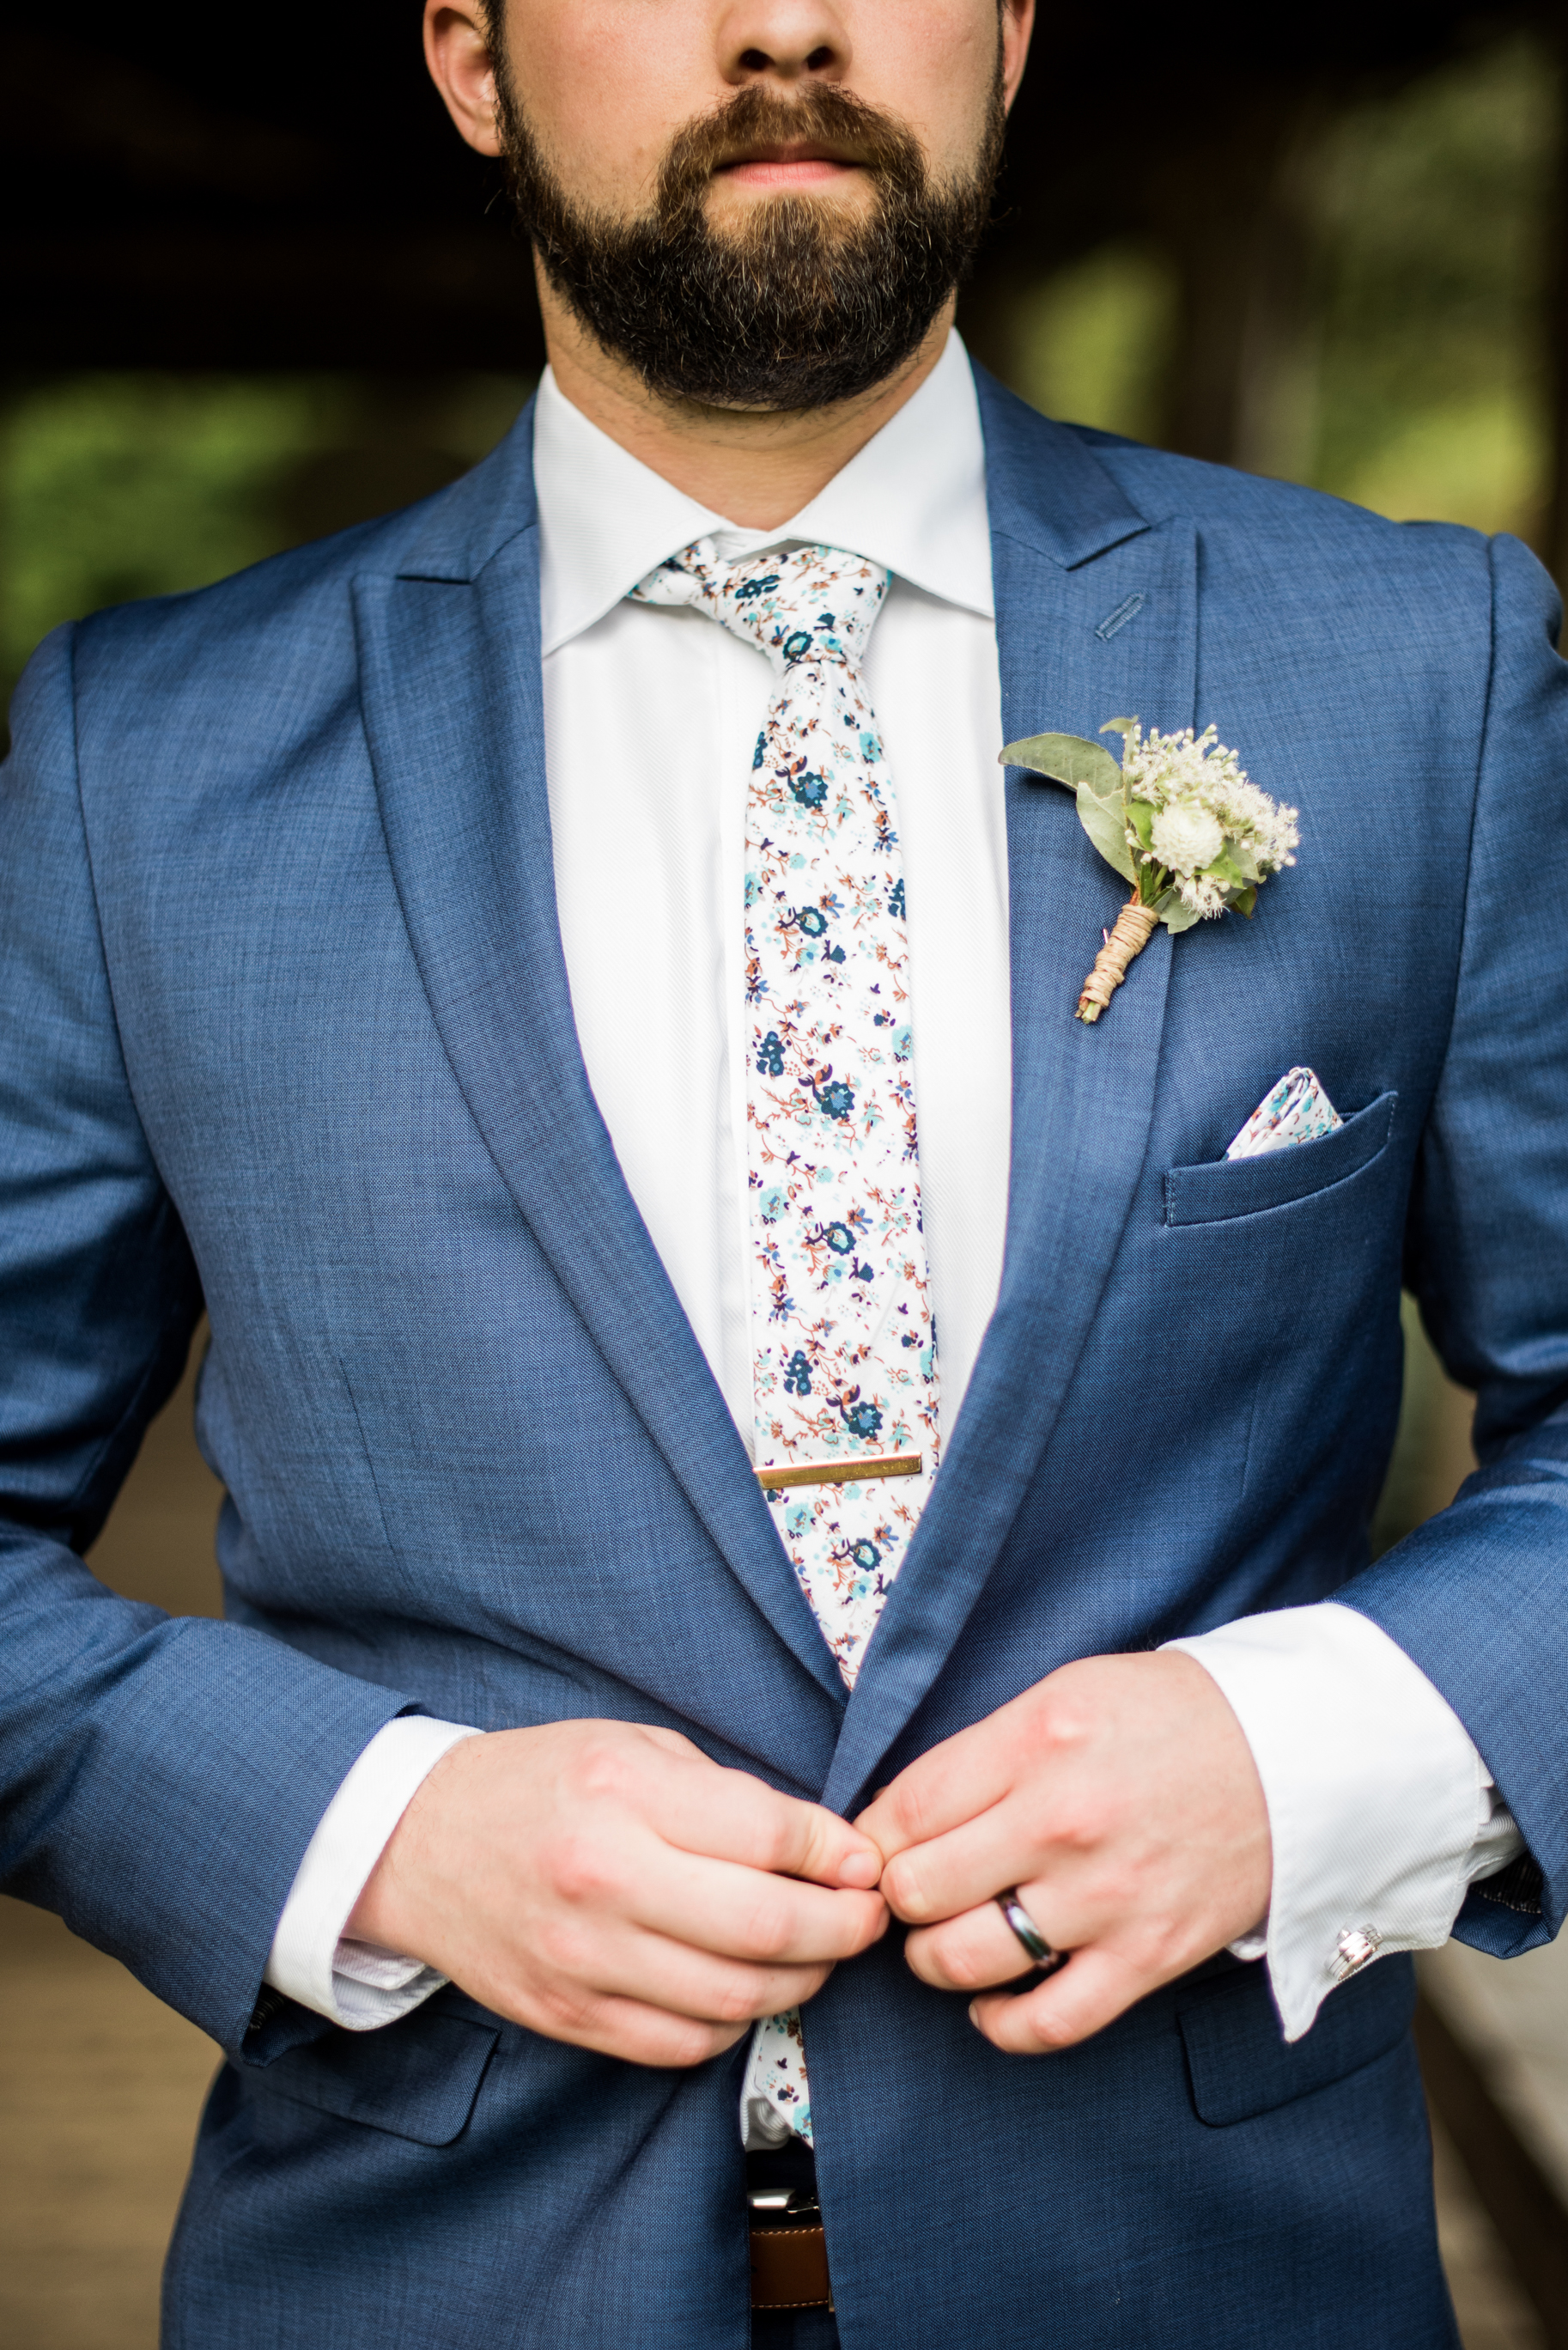 groom buttons suit jacket